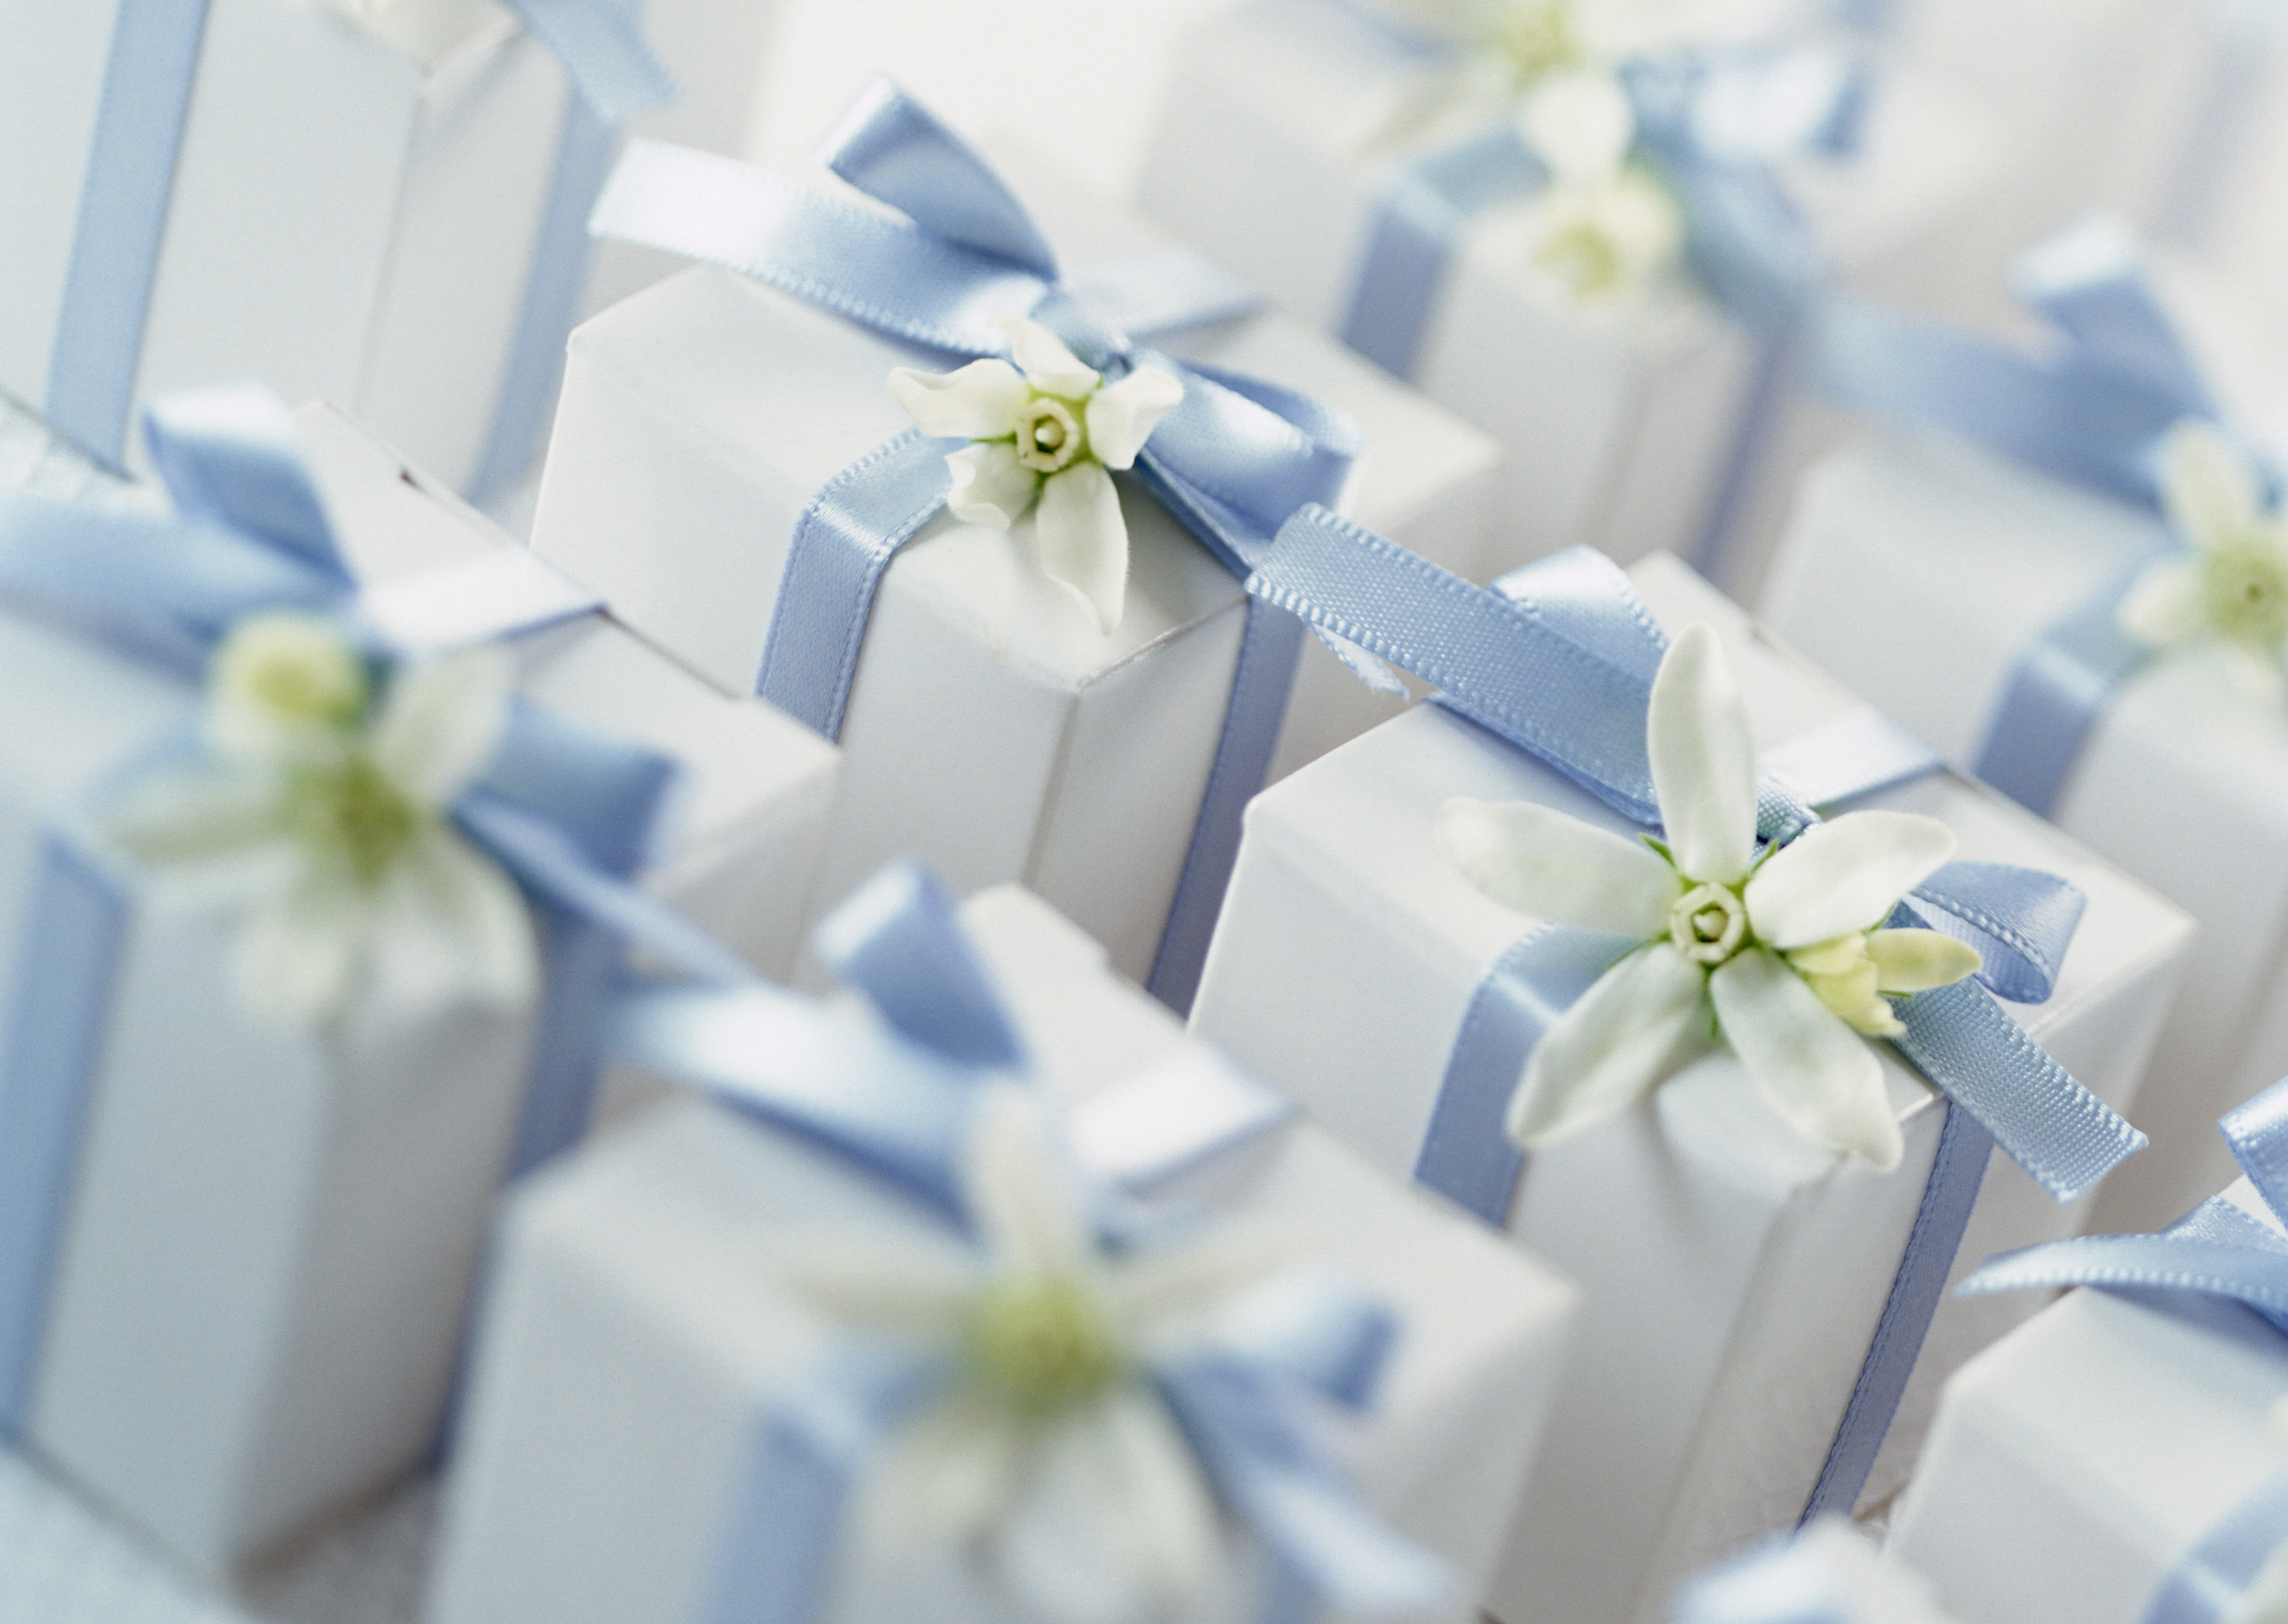 Wedding Gift For Friend Male: 5 Gifts The Wedding Couple Will Absolutely Love